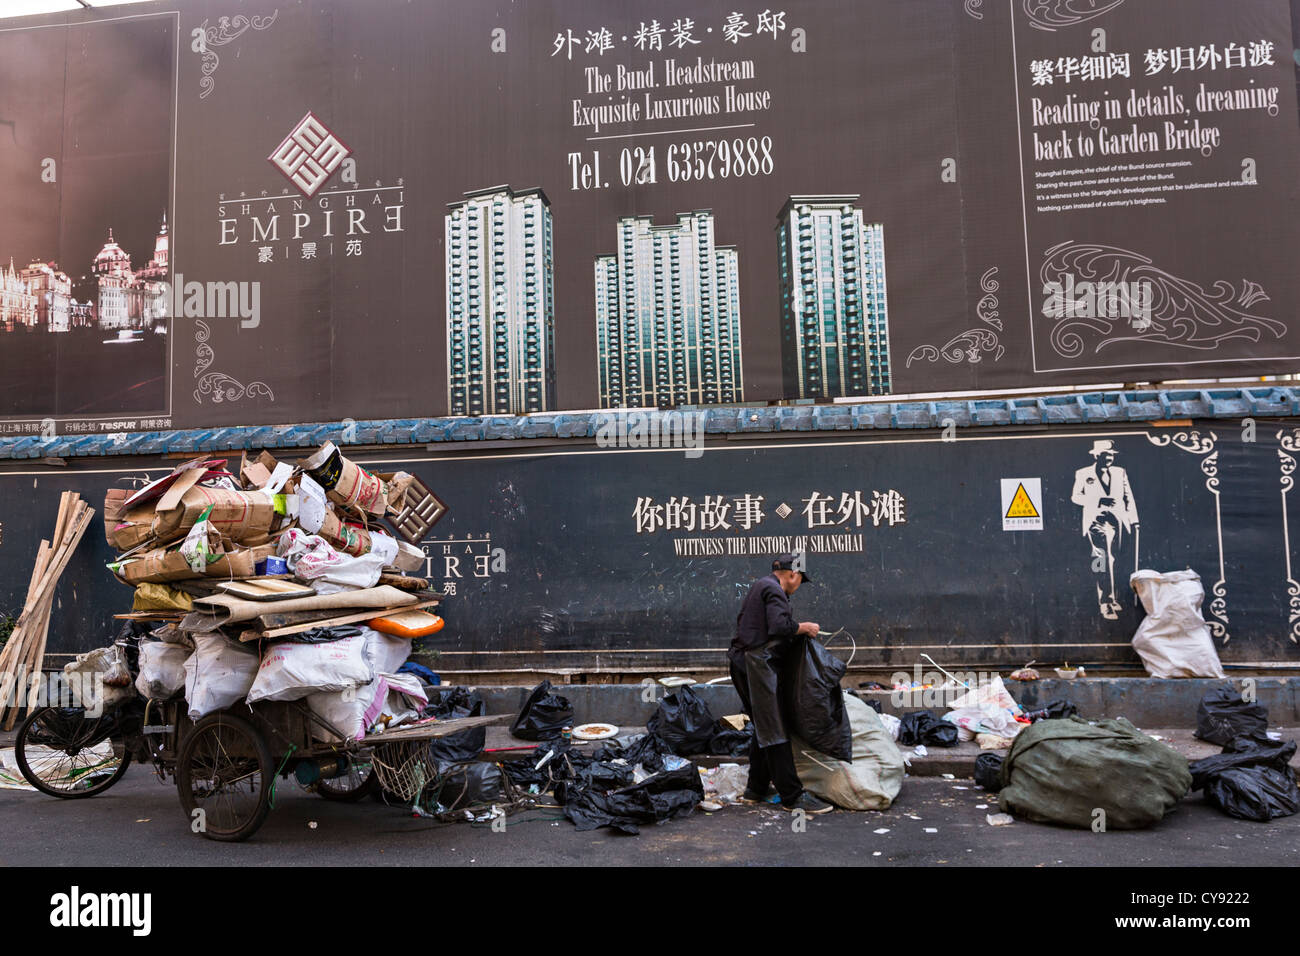 A street cleaner recycles paper in front of a luxury development in Shanghai, China - Stock Image